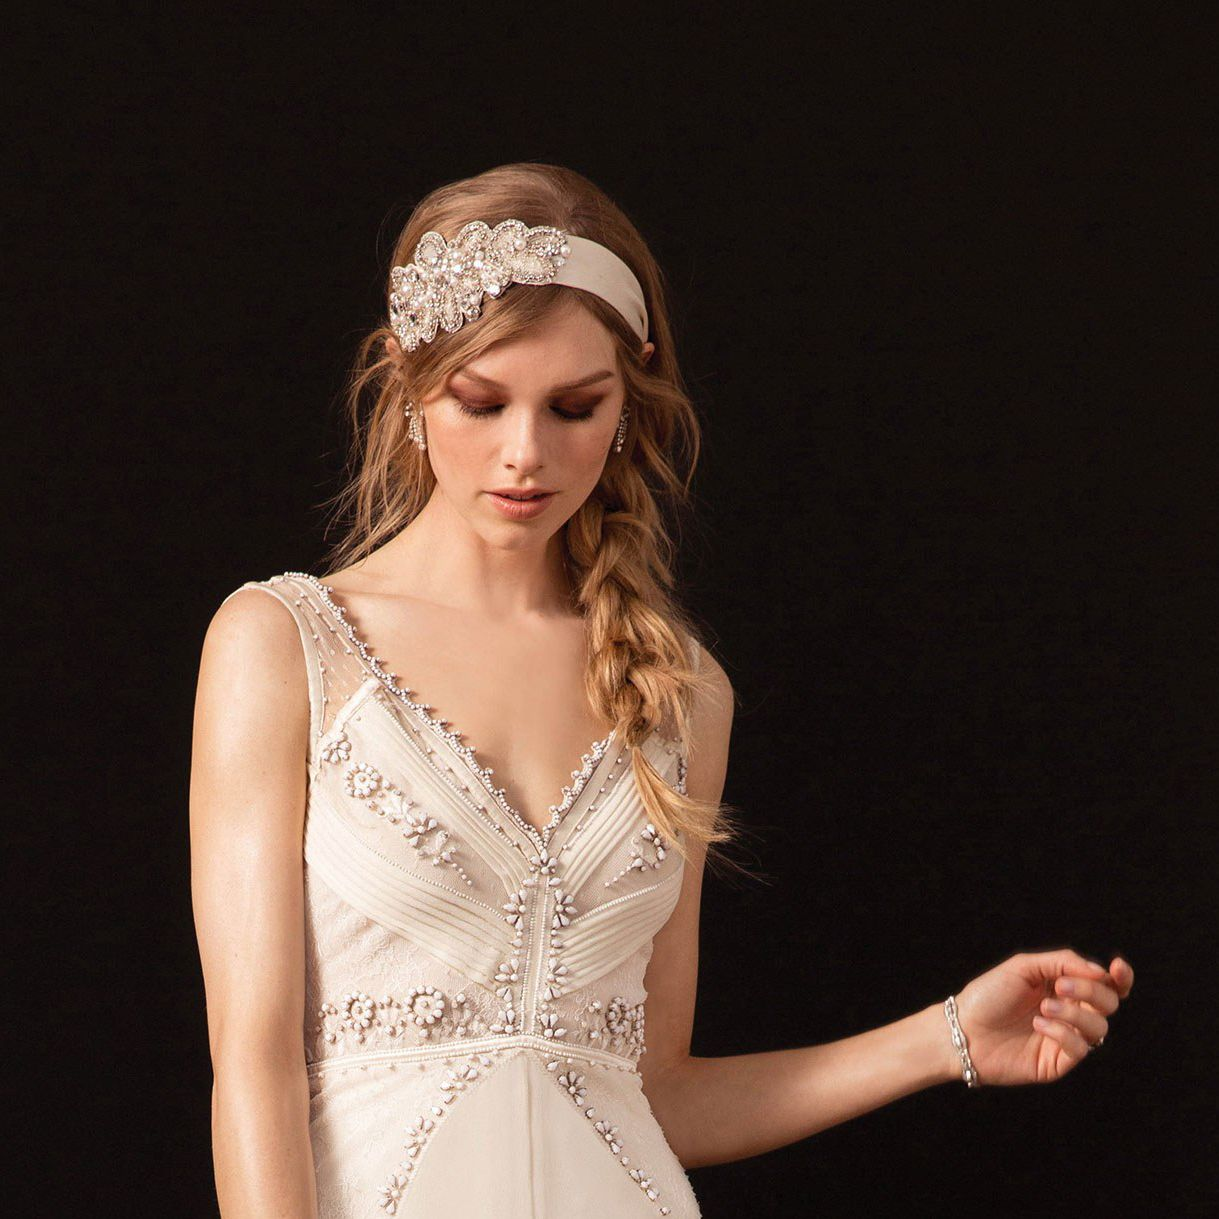 Vintage style wedding gown with embroidered headband at temperley